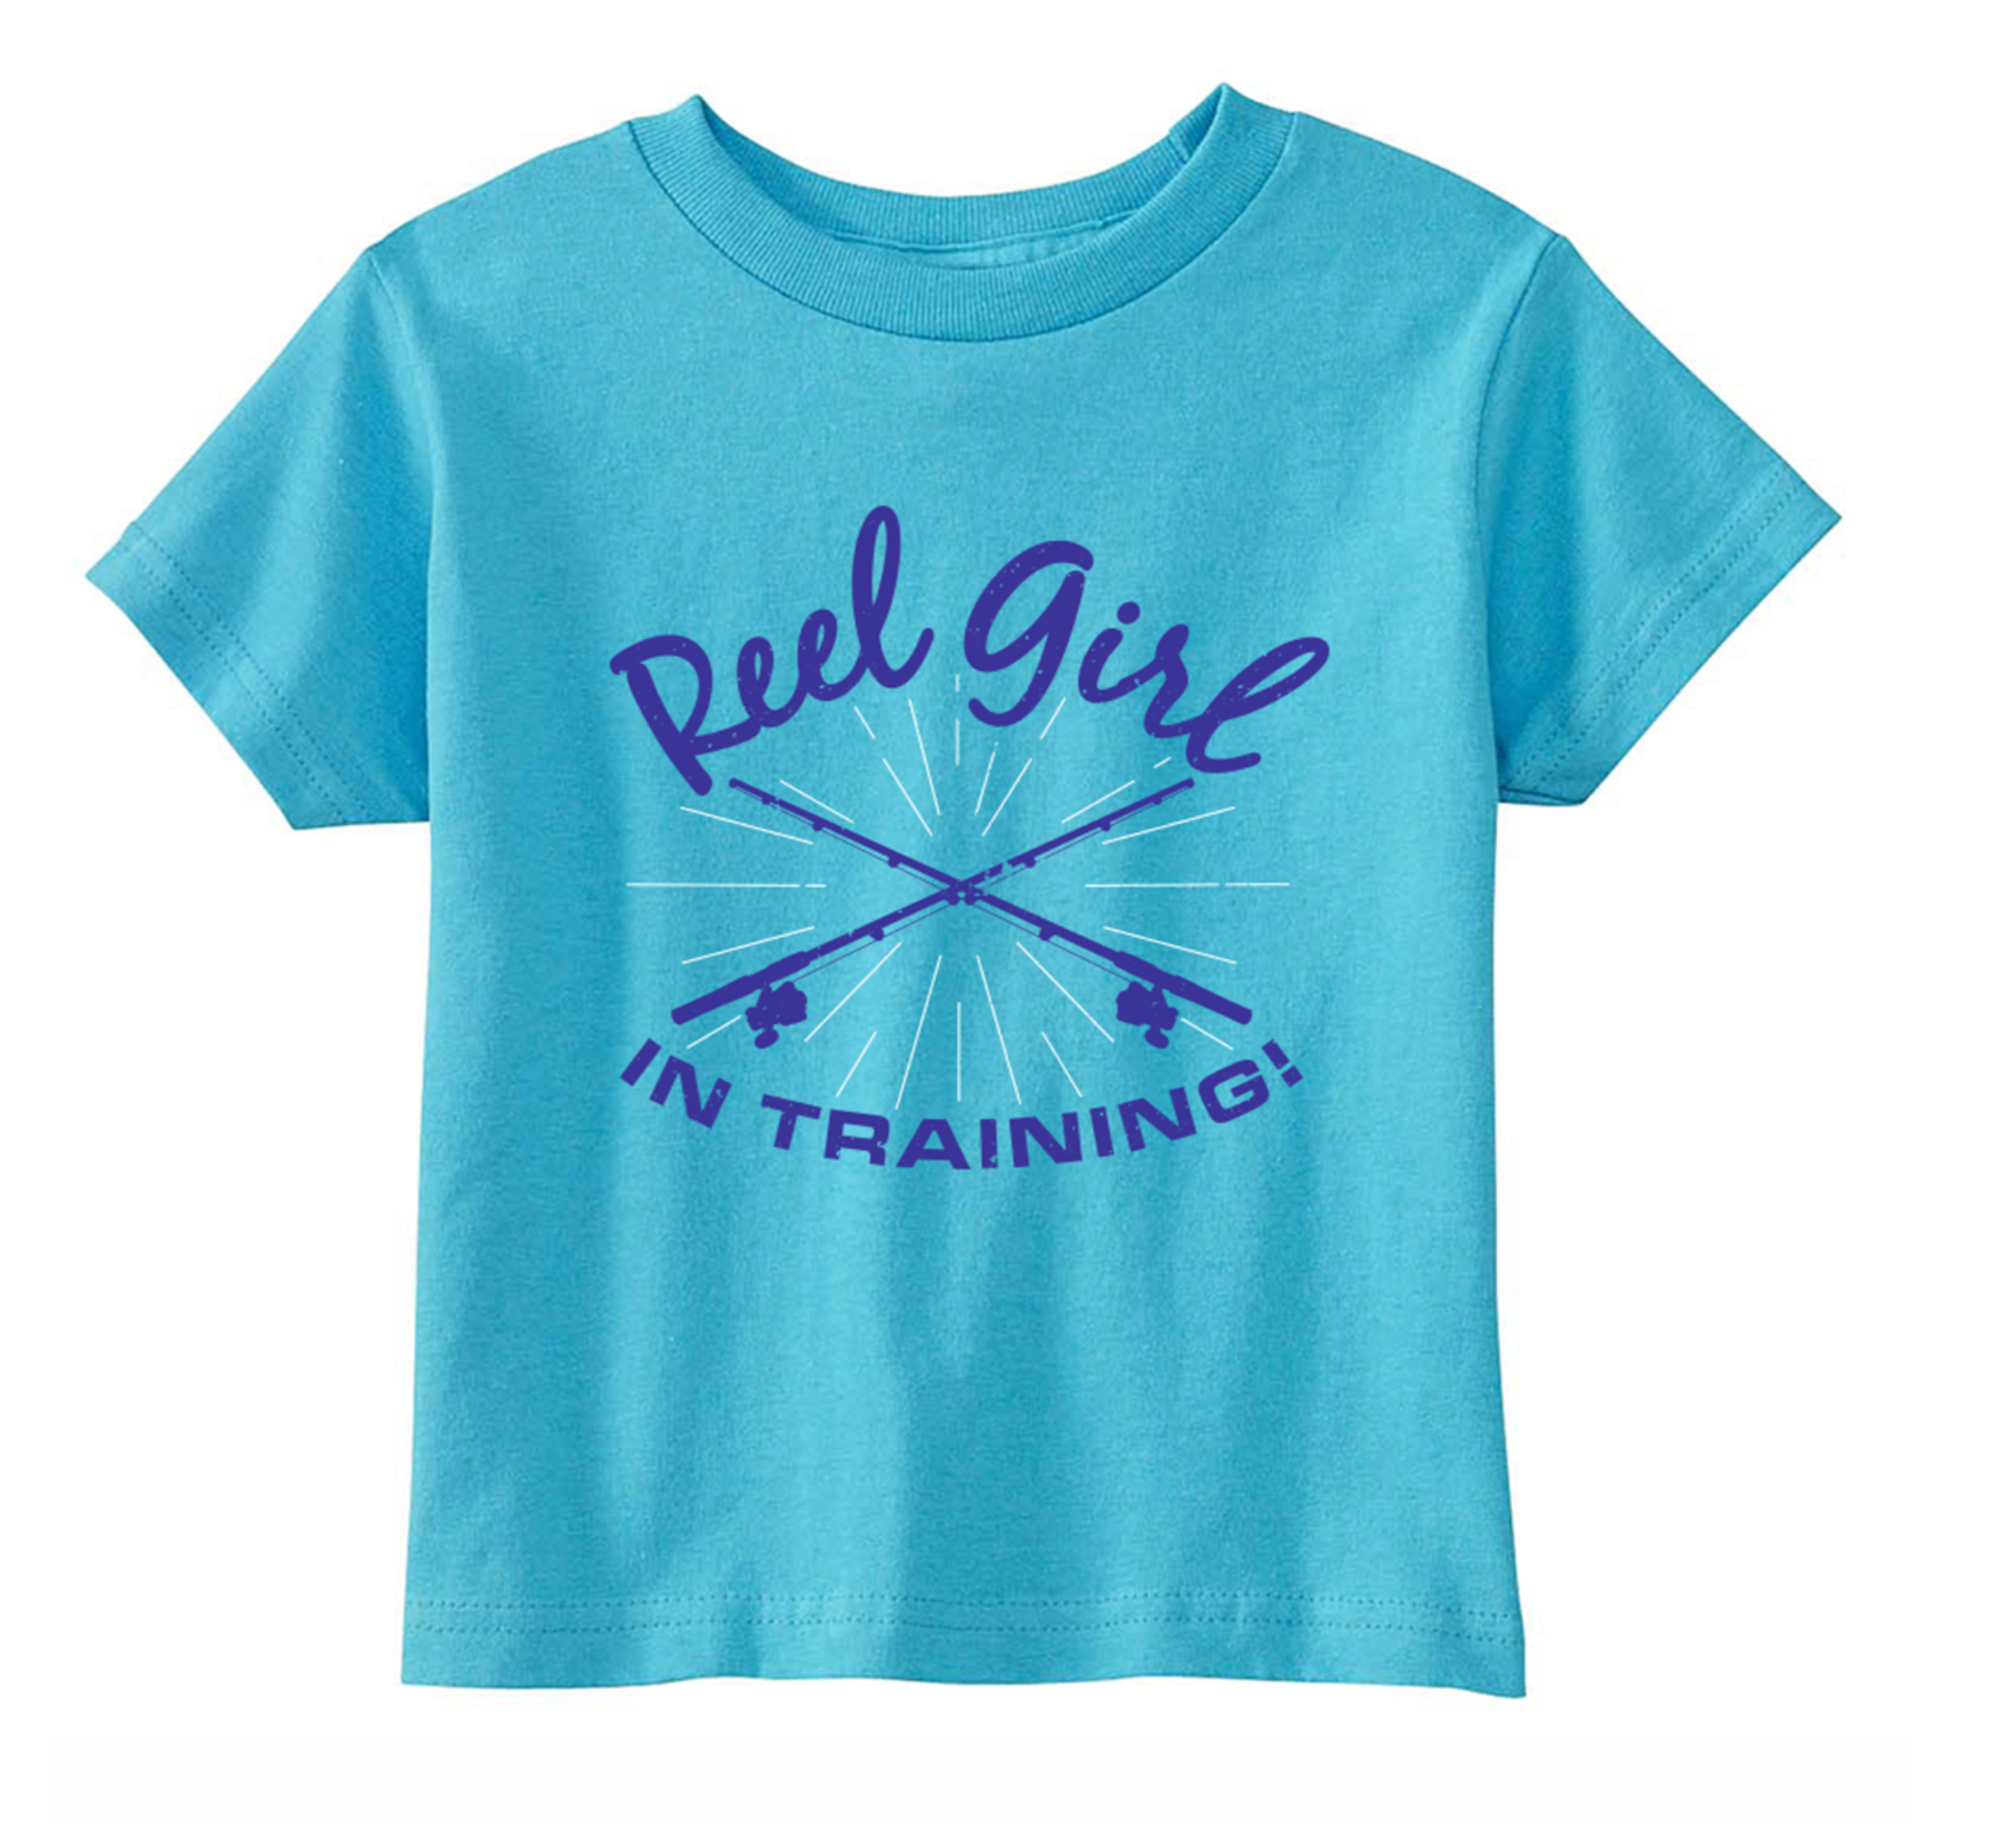 Toddler/Children's Reel Girl in Training Scoop Neck T-Shirt - Aqua - Destin Outdoors